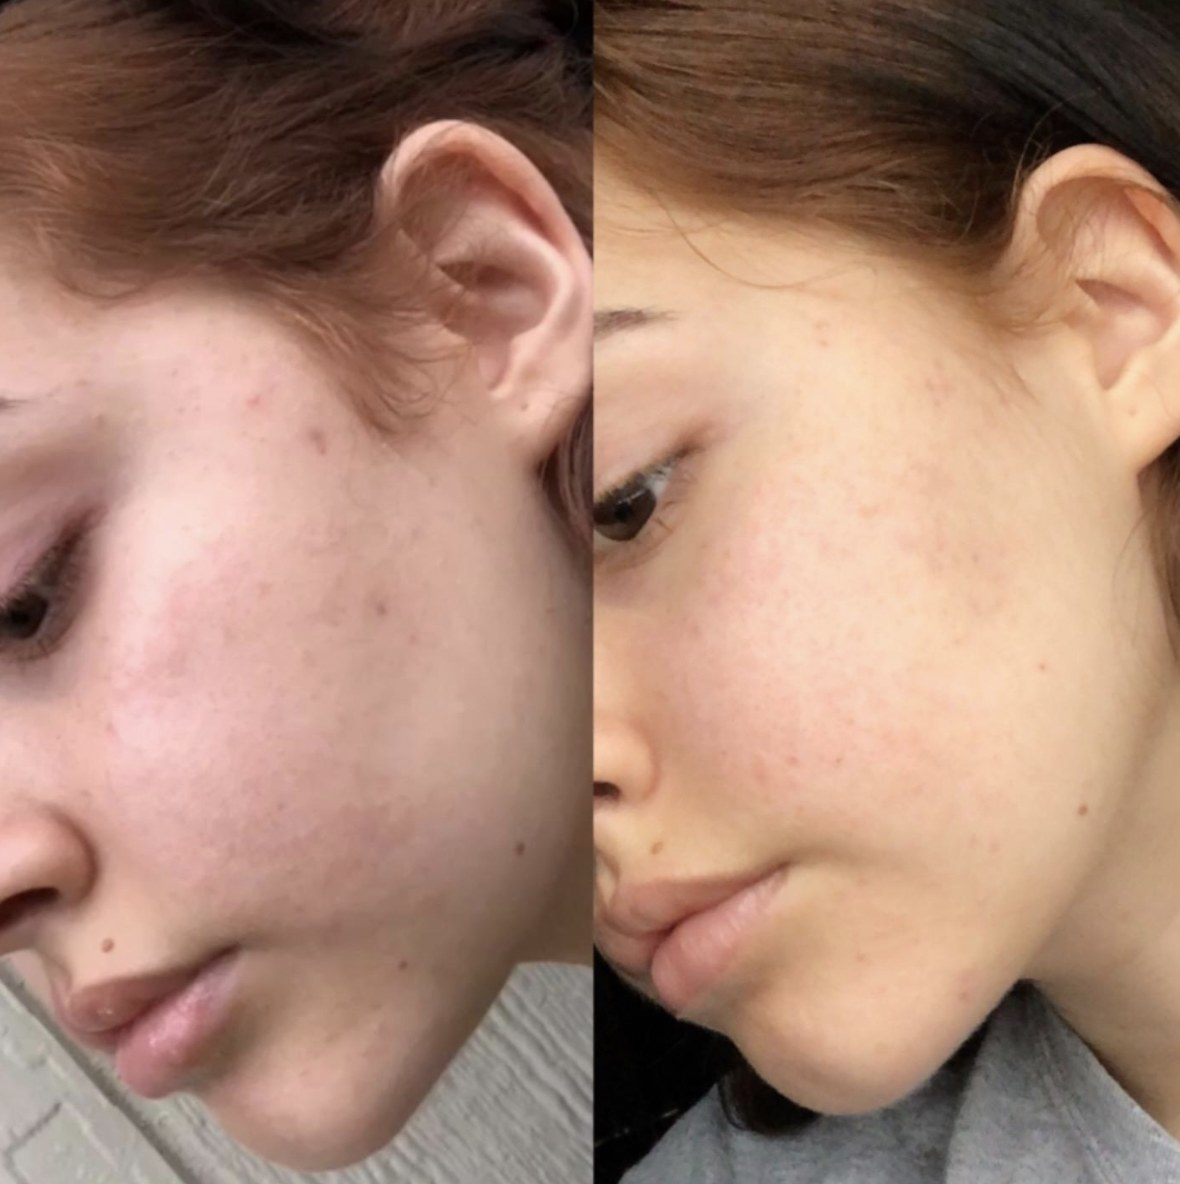 a before and after photoset of a persons face along with the product